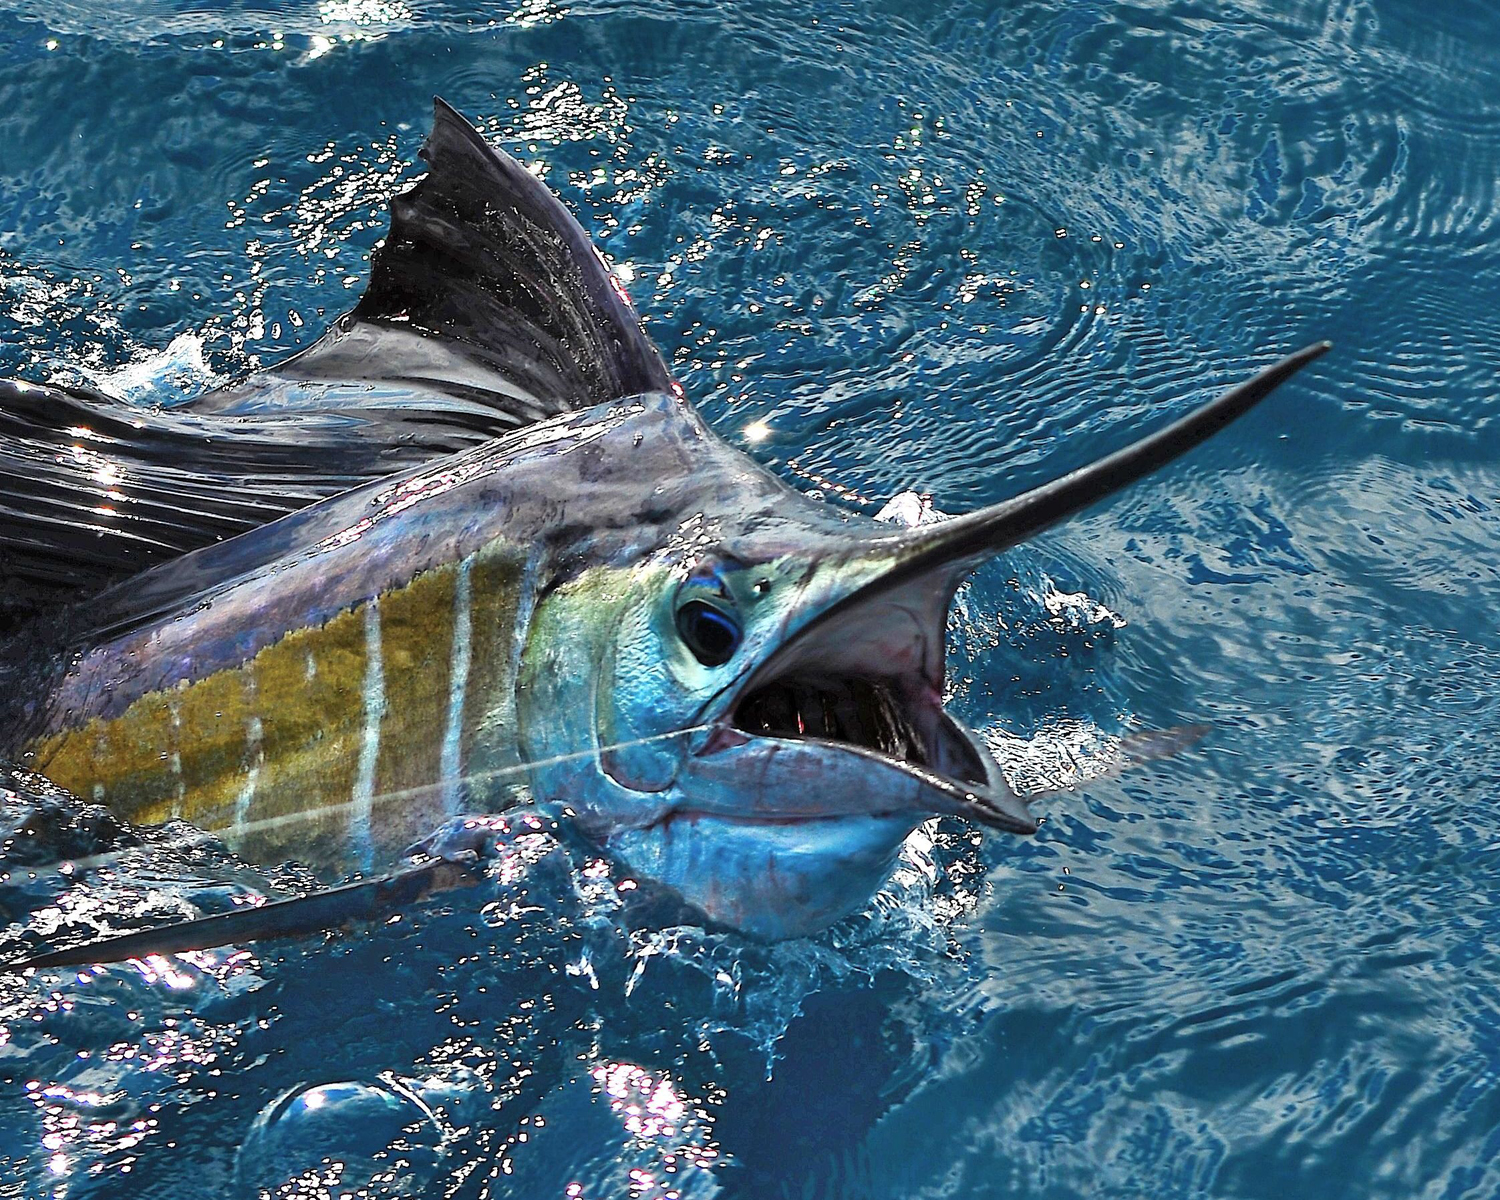 Manatees moreover Cichlid likewise Sailfish Fastest Fish Ocean in addition Bad Tattoos 16 Weird besides 818587 Fuse Panel Diagram. on oscar fish in florida